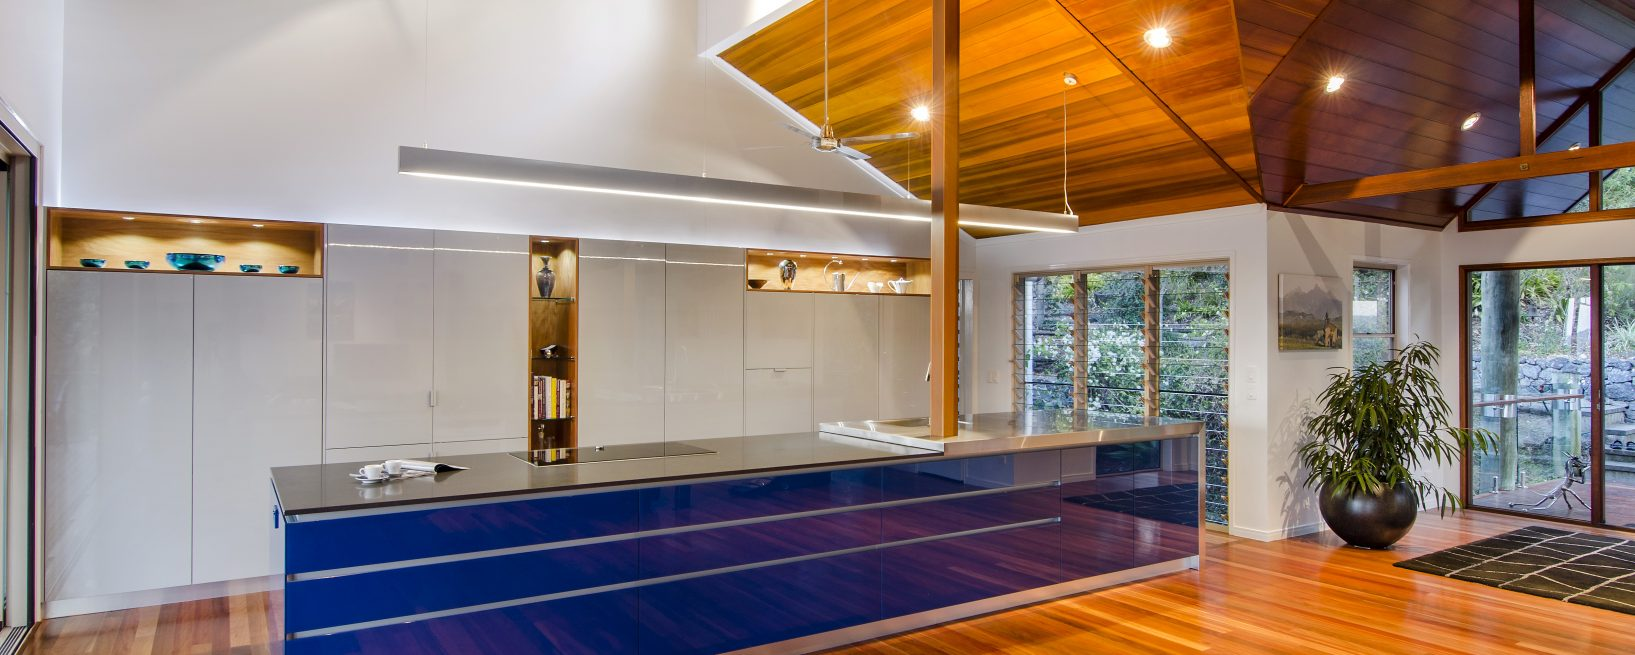 Functional Kitchen Renovation Work Zones Concealed From View